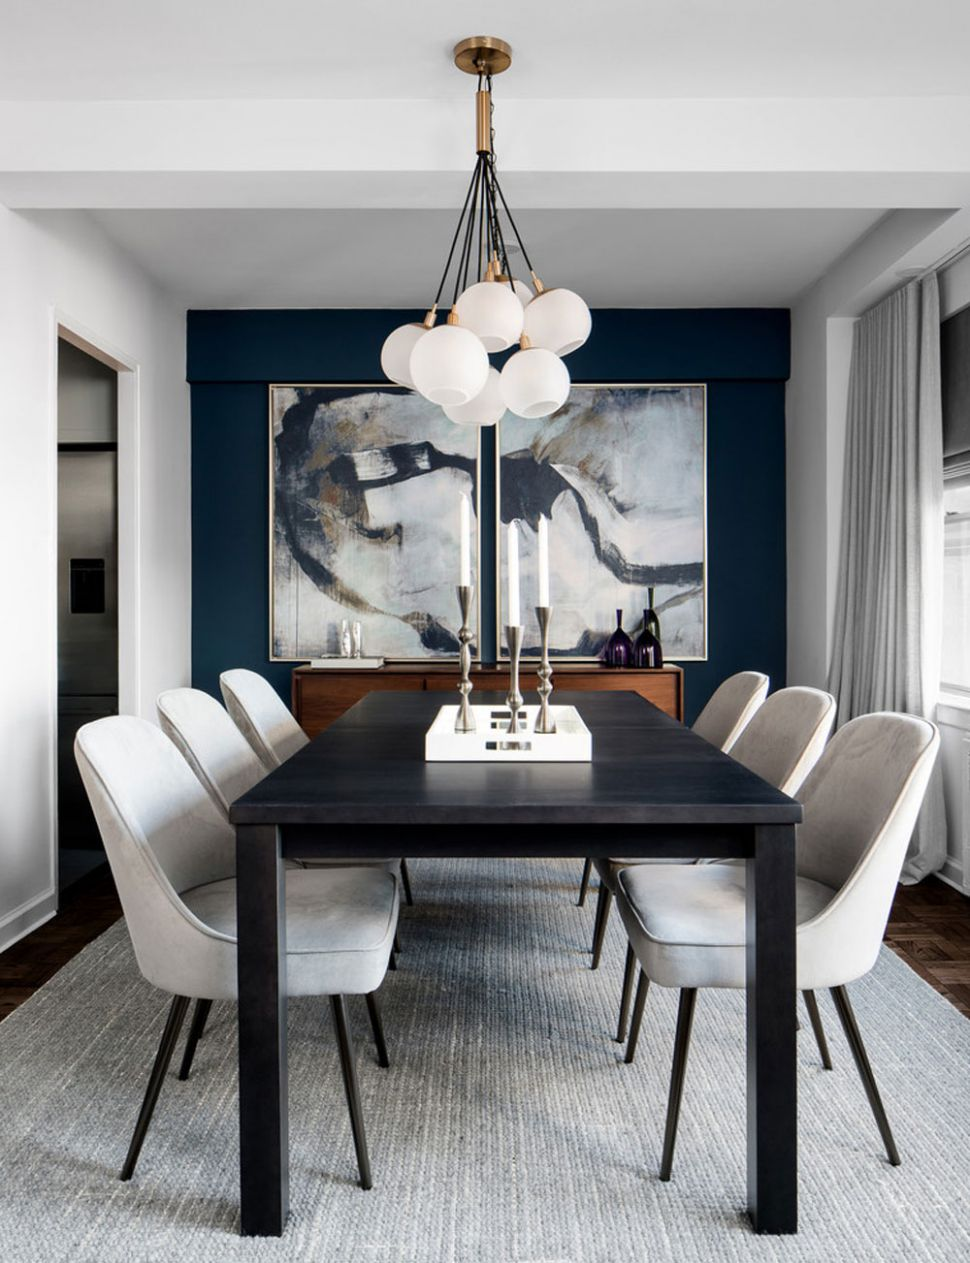 Dining room wall decor ideas that will impress your guests - dining room ideas for walls